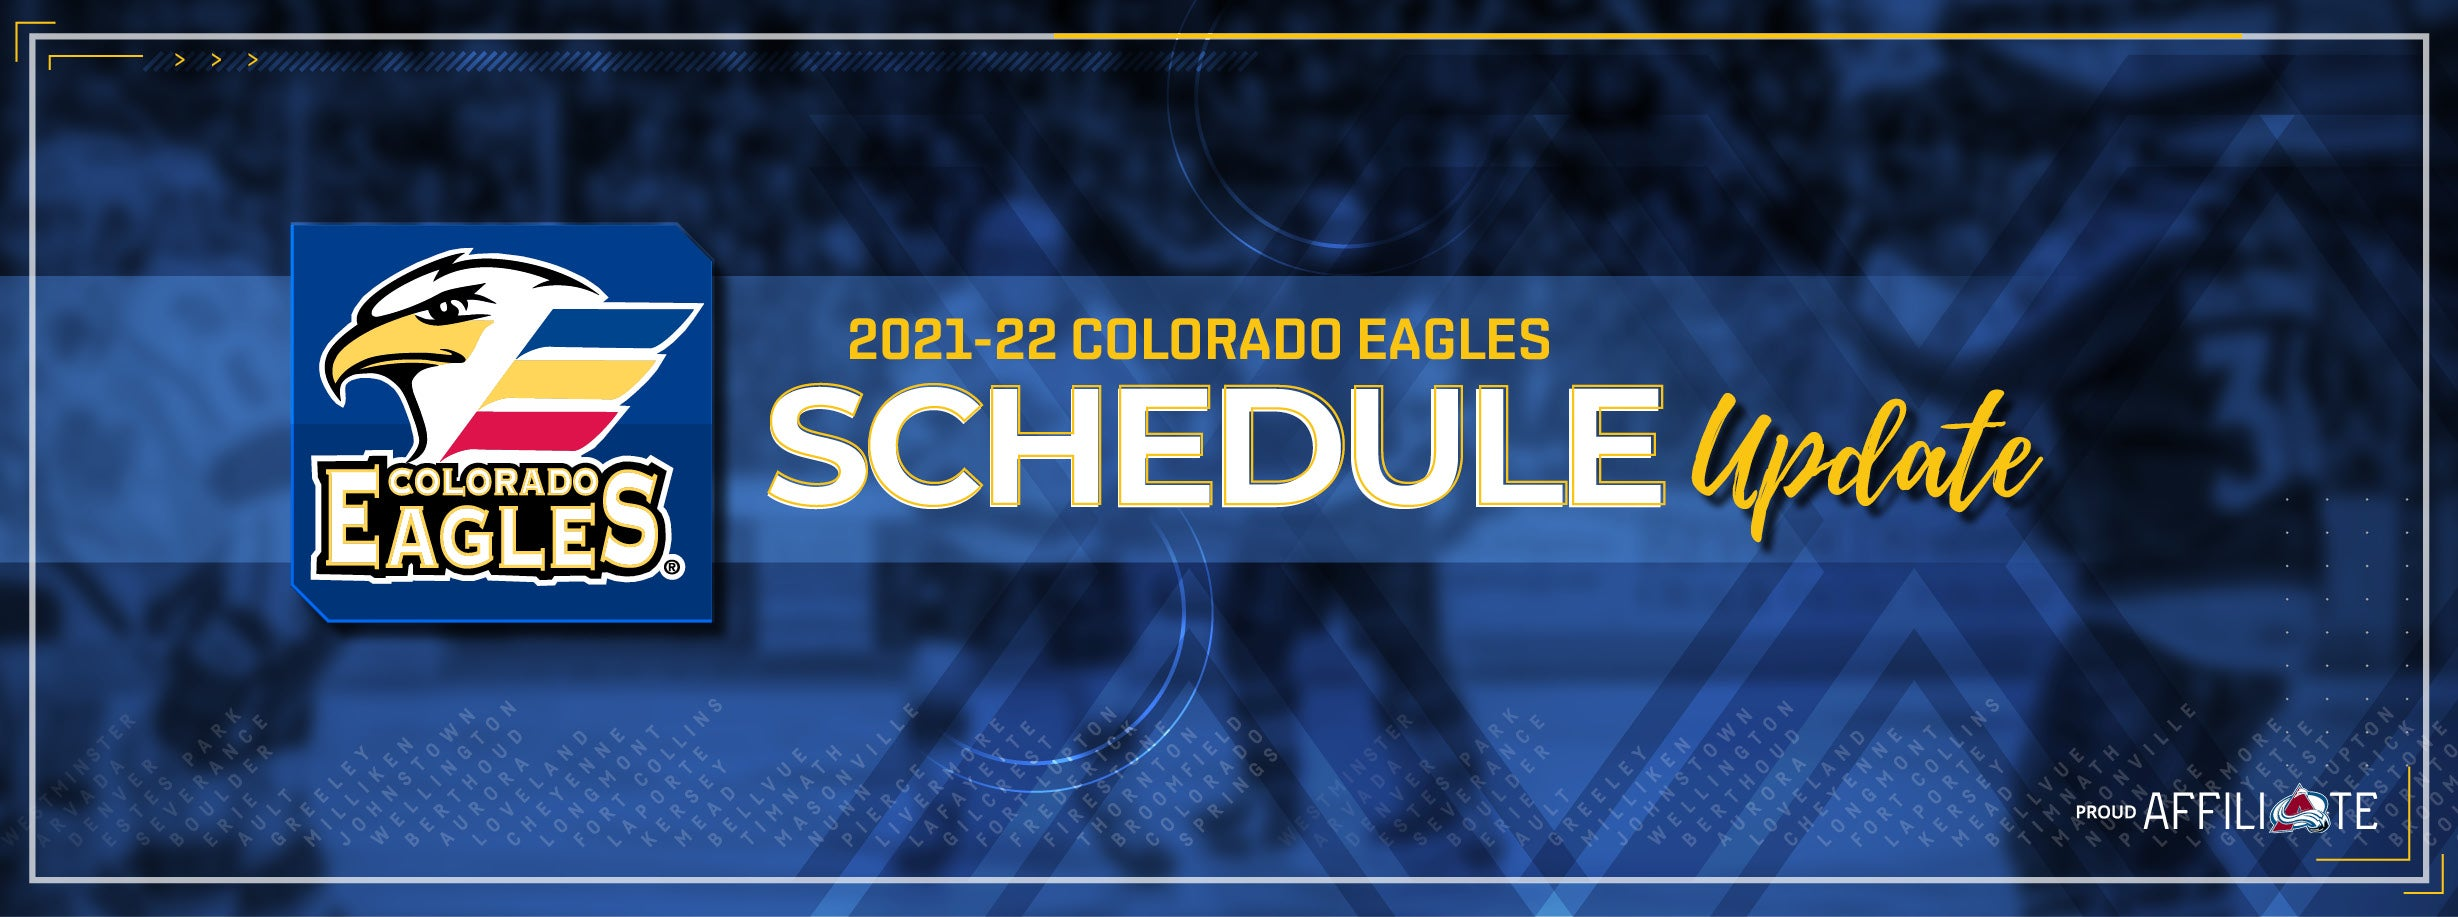 Barracuda Announce Date Change for Eagles Game